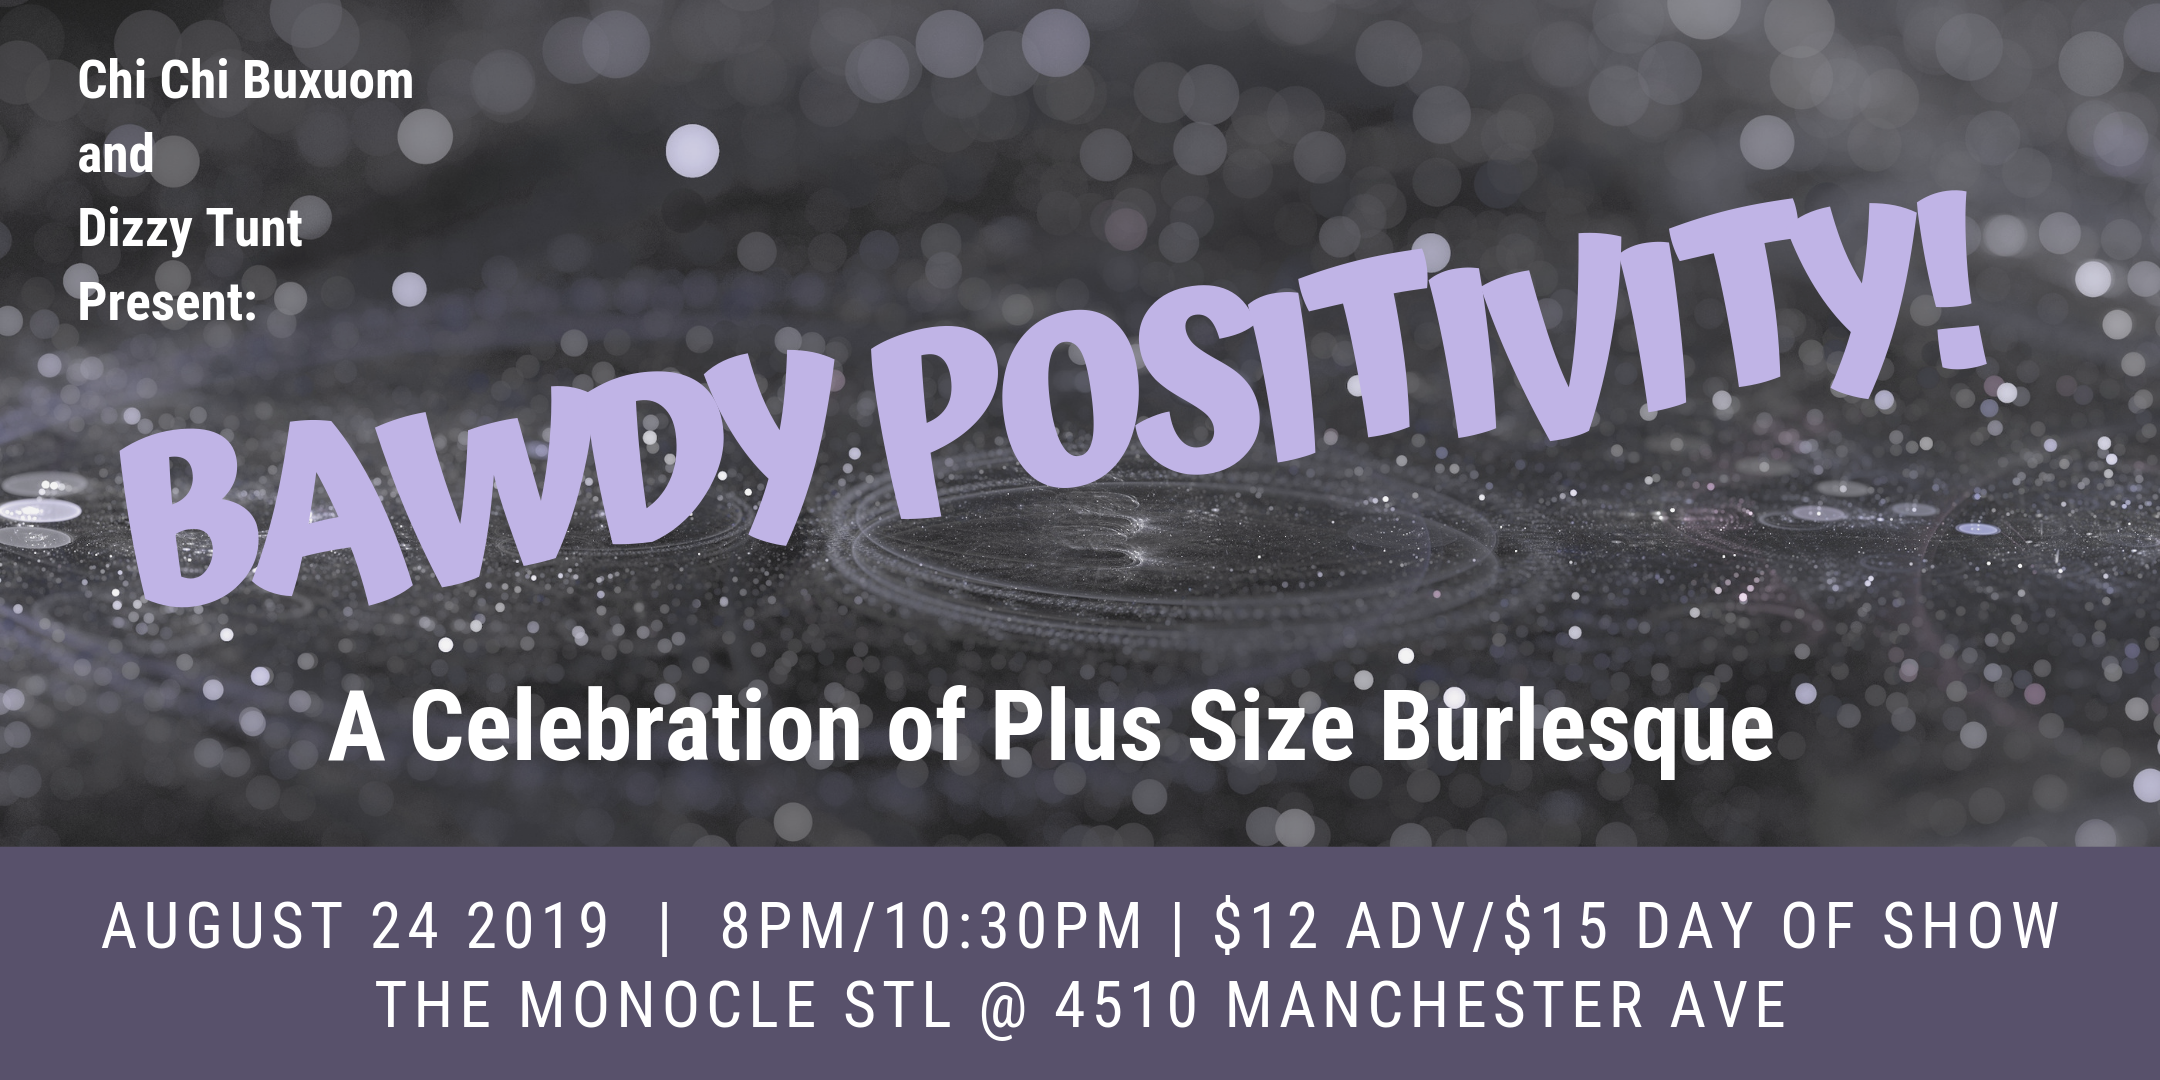 Bawdy Positivity Eventbrite.png